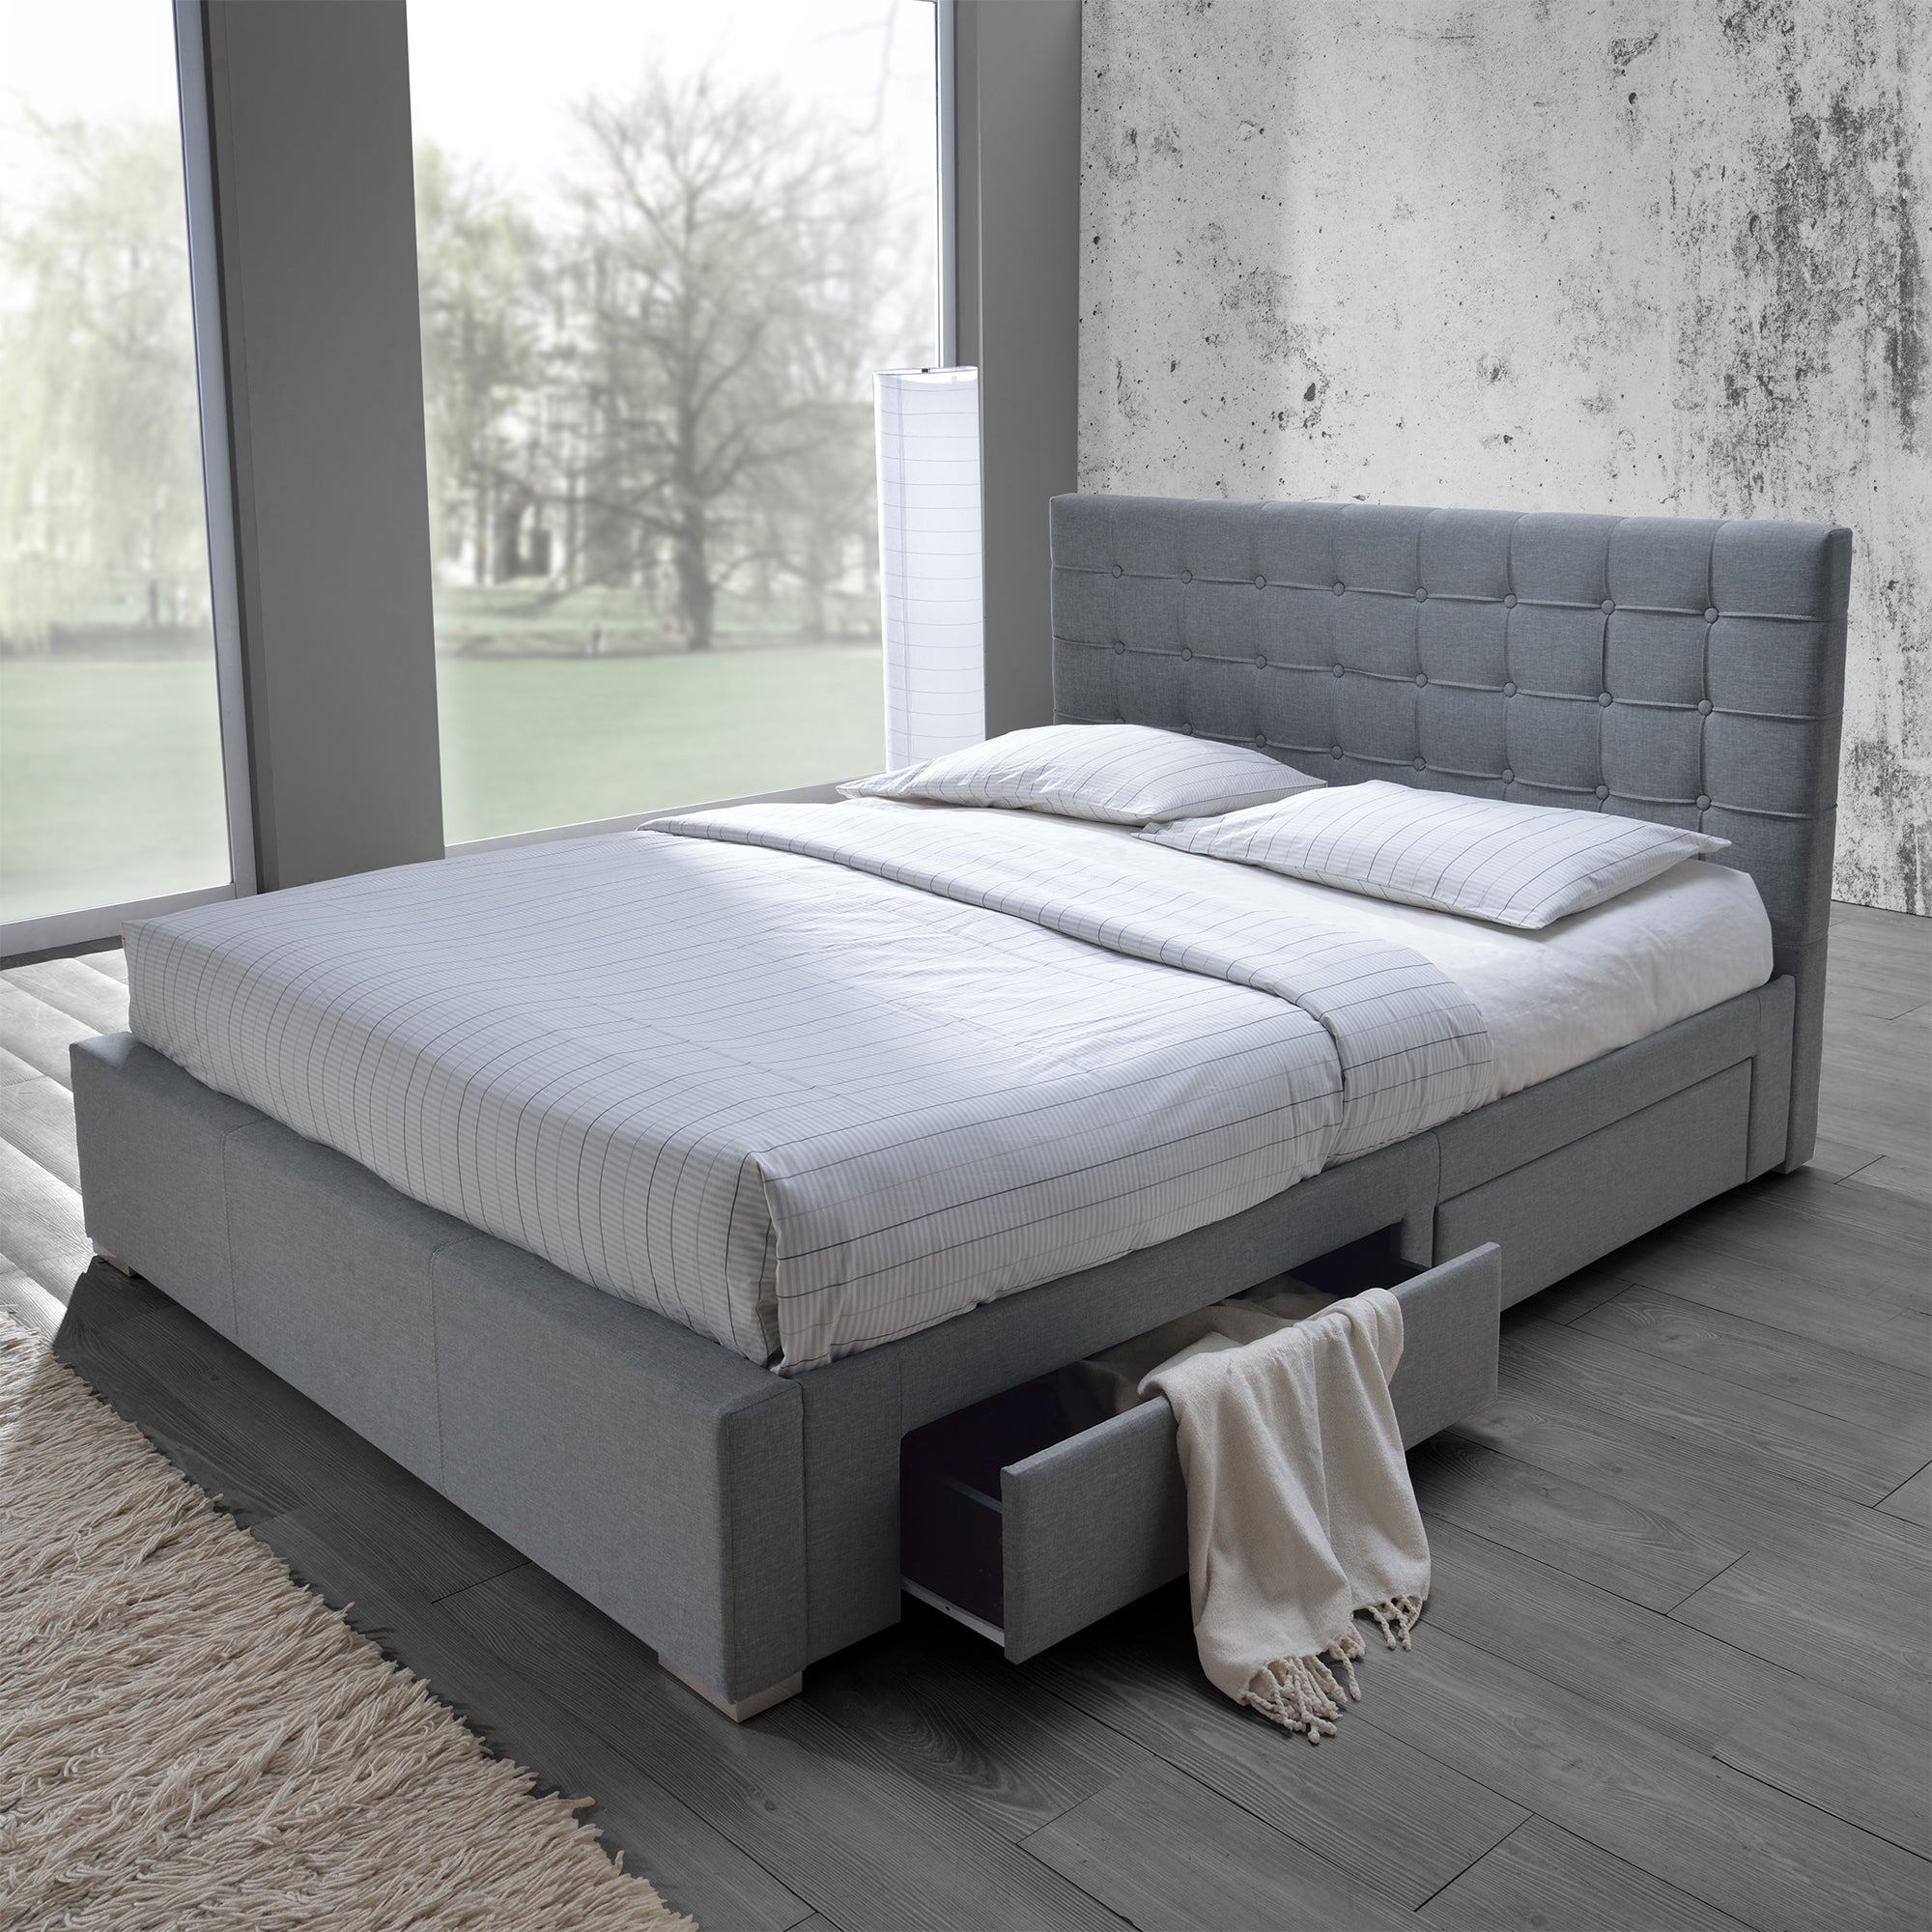 Picture of: Baxton Studio Adonis Modern And Contemporary Grey Fabric 4 Drawer Queen Size Storage Platform Bed Overstock 20543703